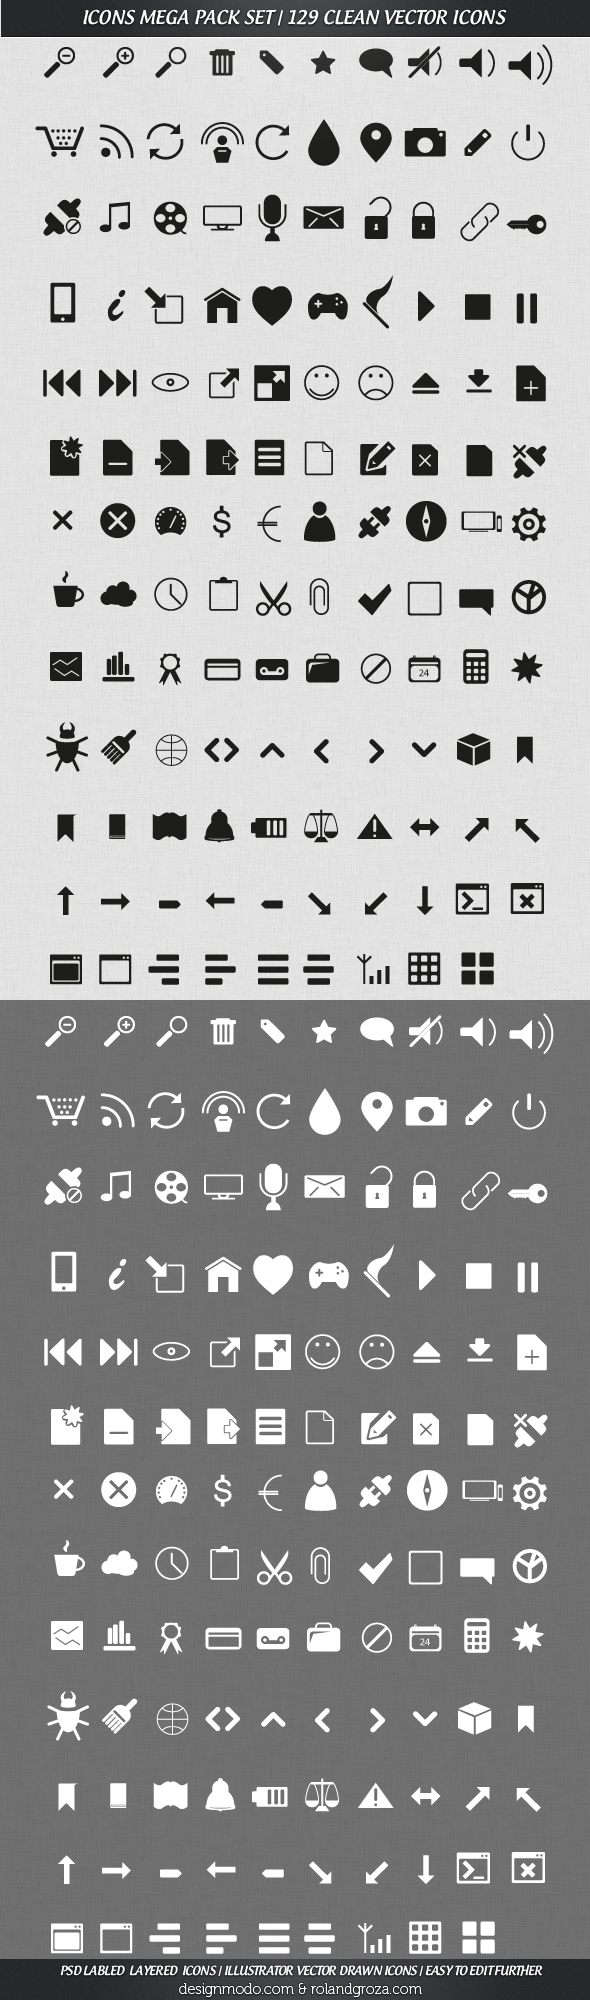 Free Mega Pack Vector Icons Set - 129 Clean Icons